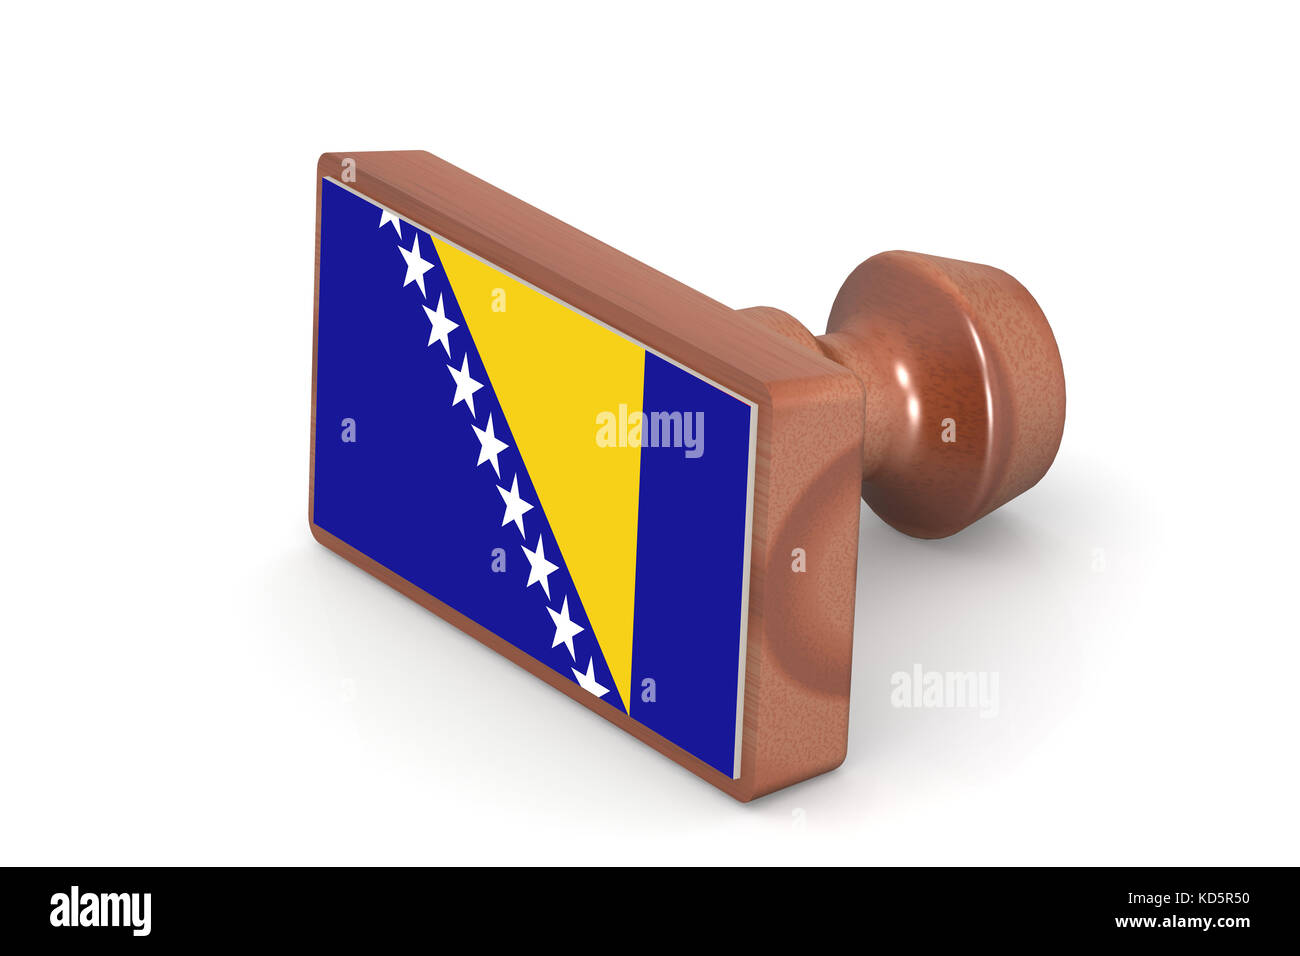 Wooden stamp with Bosnia and Herzegovina flag image with hi-res rendered artwork that could be used for any graphic - Stock Image